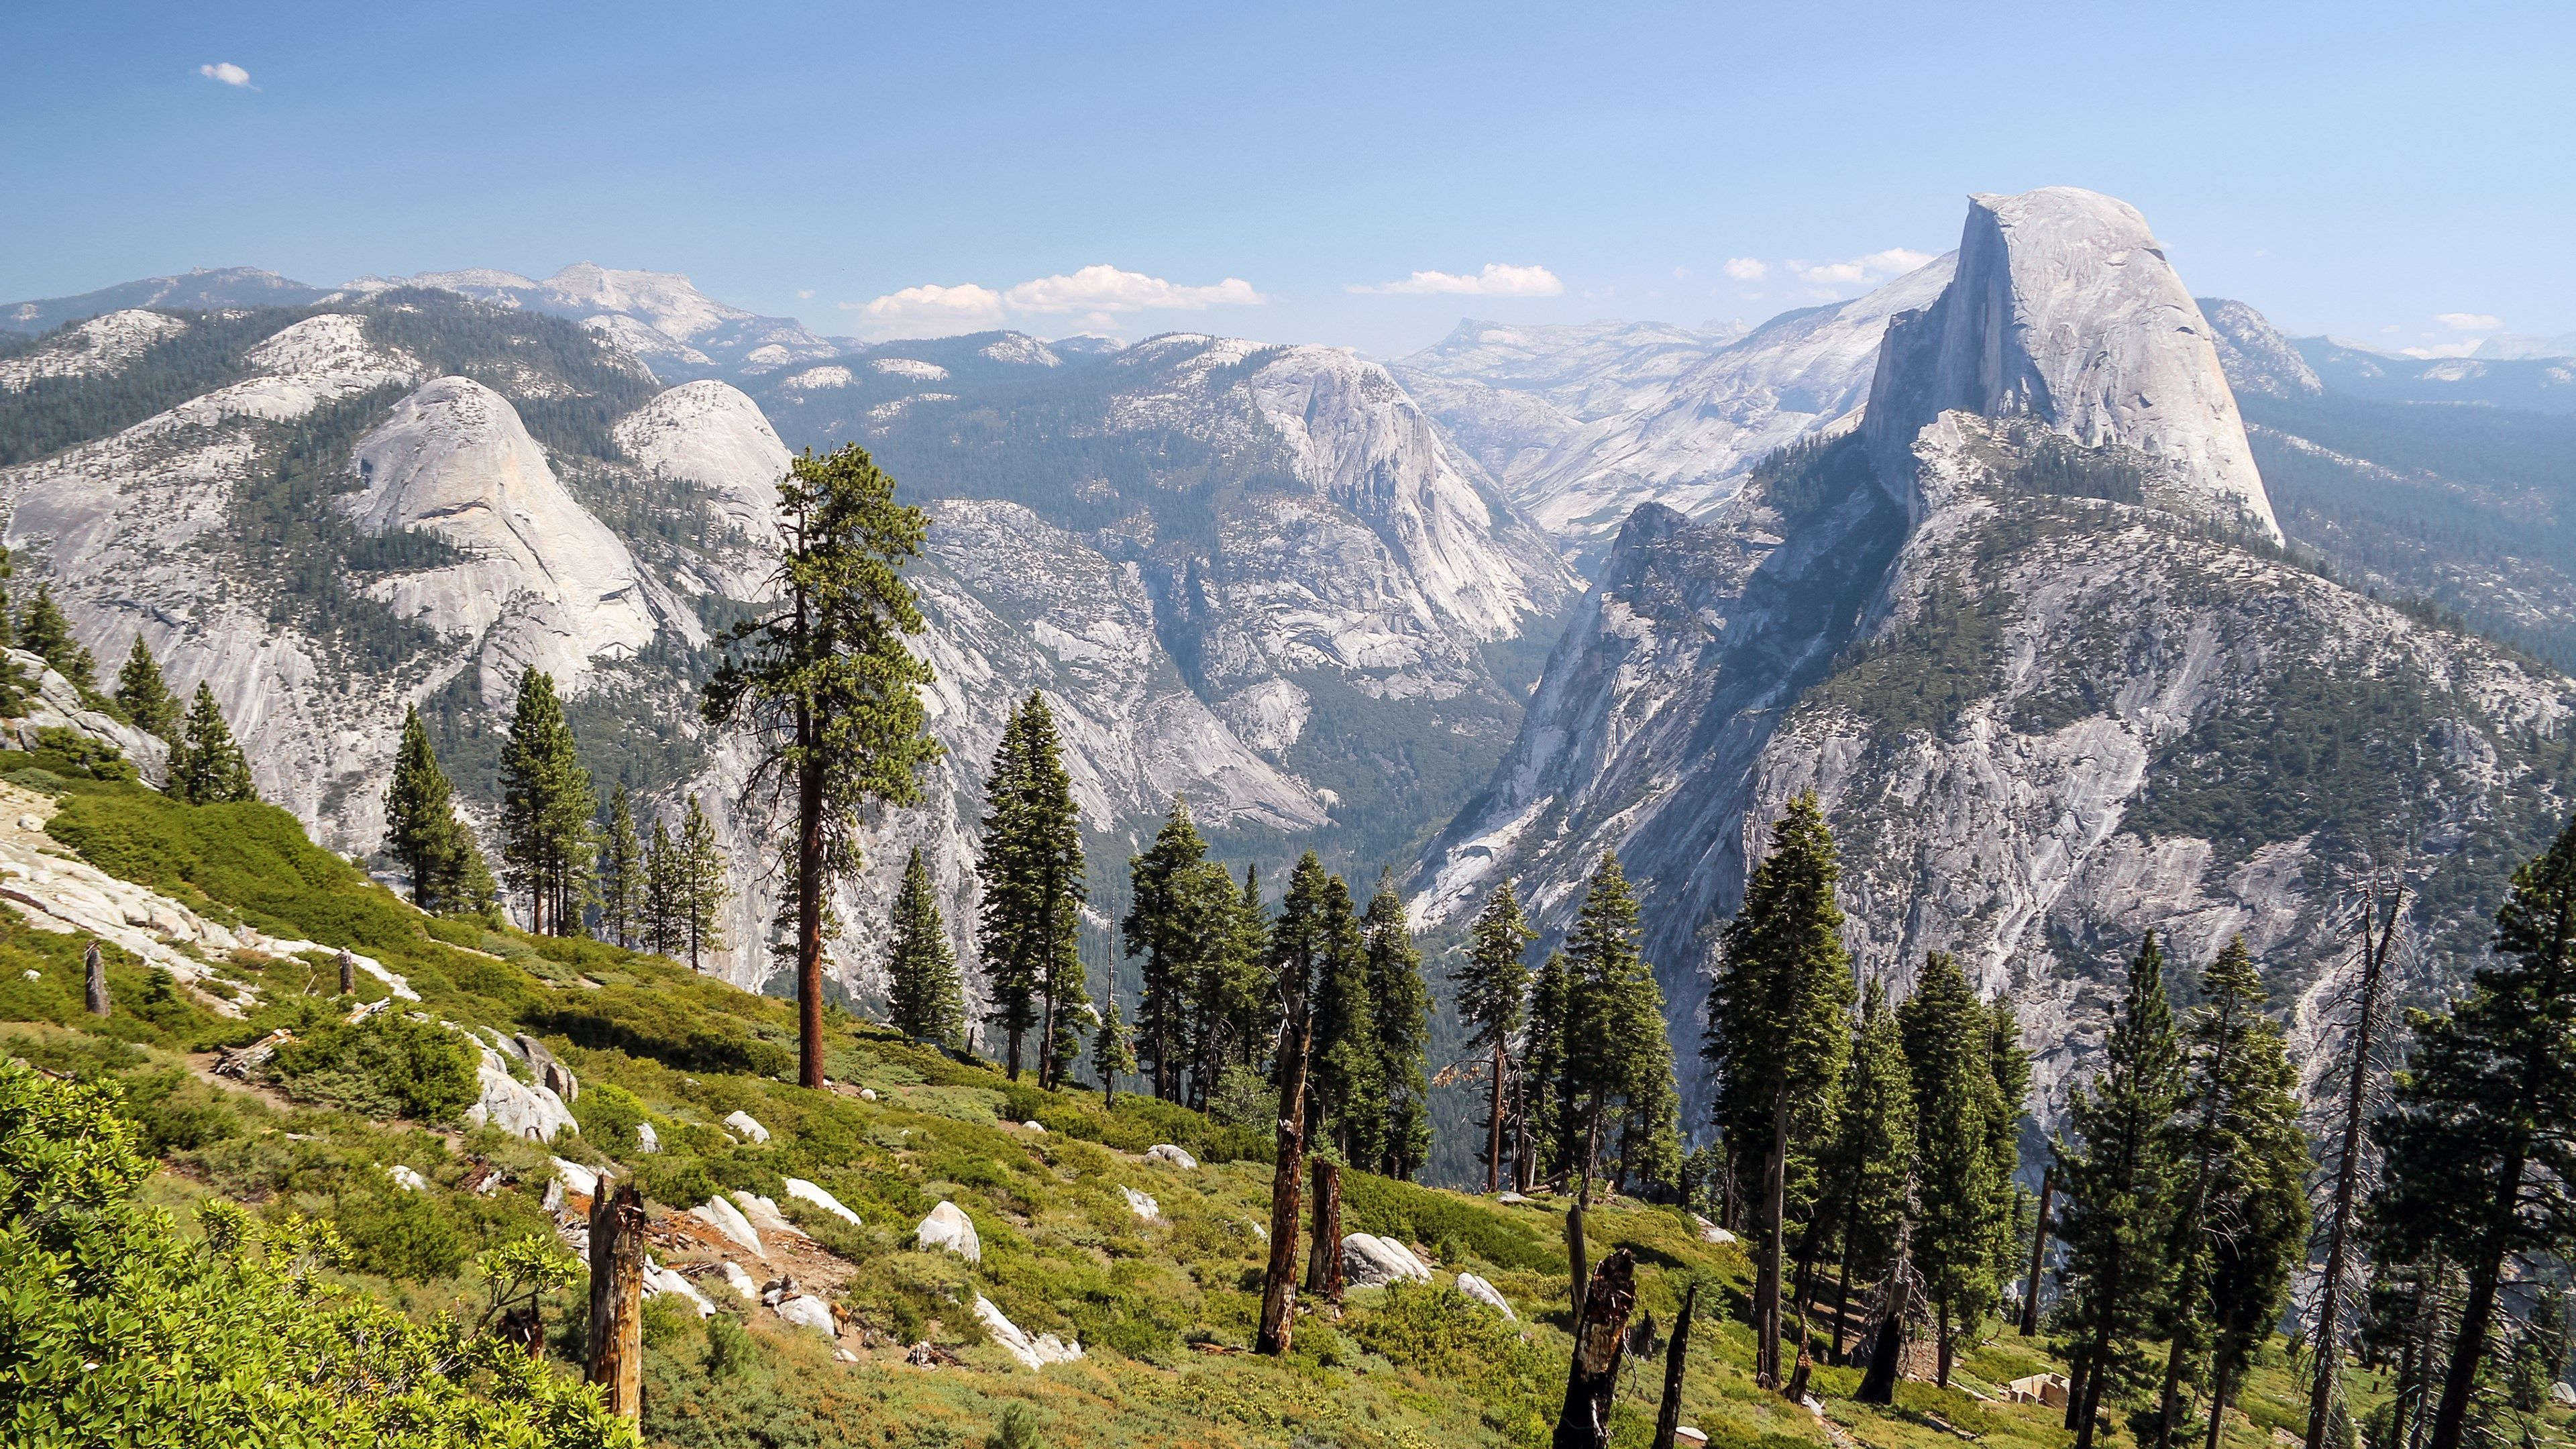 4k Beautiful Background Wallpaper 3840x2160 Yosemite Valley California National Parks National Parks